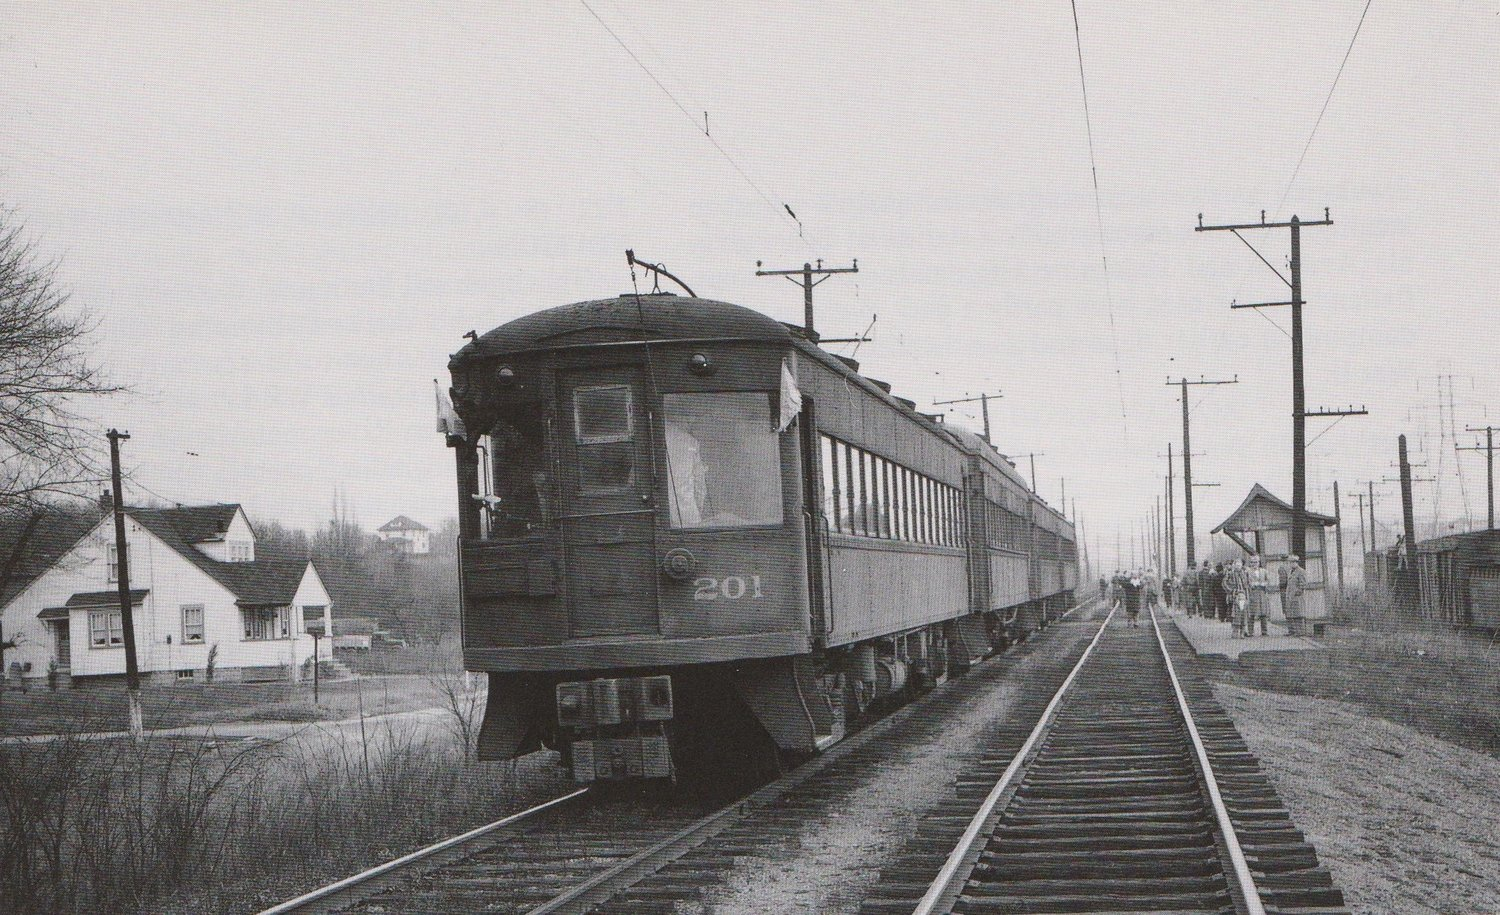 """Baltimore & Annapolis Car #201 at Rosemont Station. Rosemont Station, Maryland Date: January 1950. Source: """"Baltimore Light Rail, Then & Now"""" by Herbert H. Harwood Jr."""